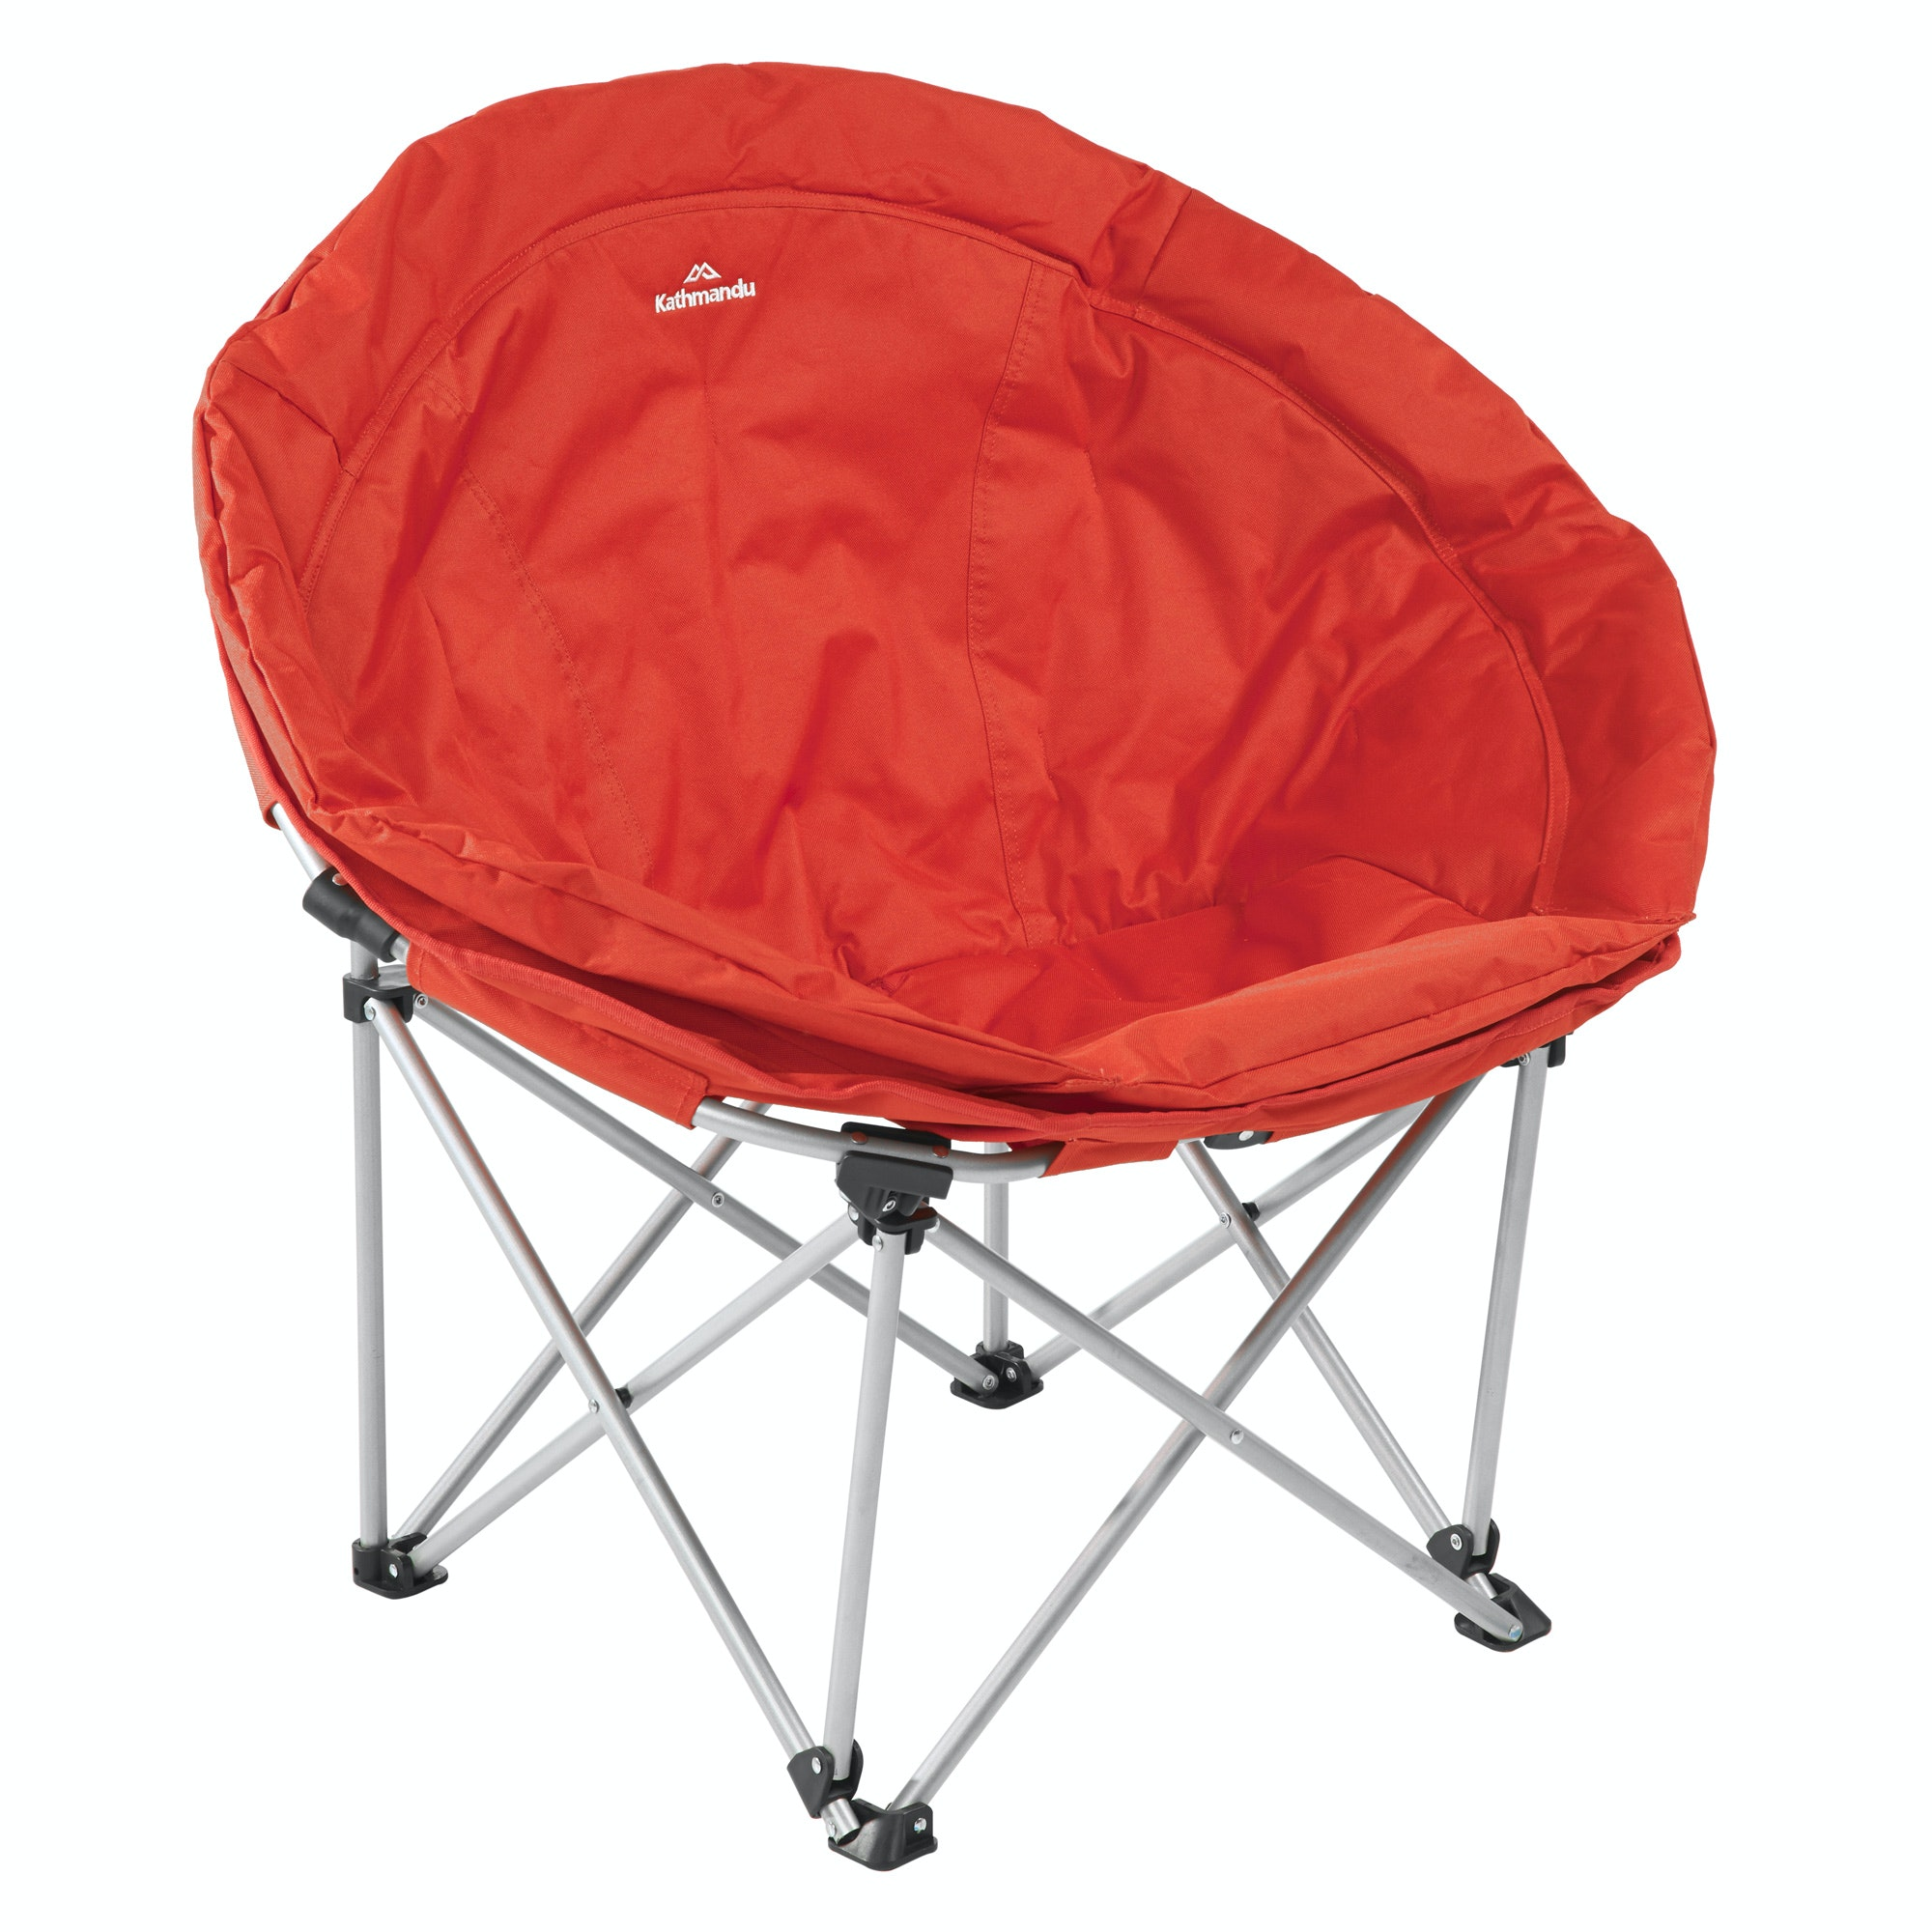 Kathmandu Retreat Folding Padded Moon Chair